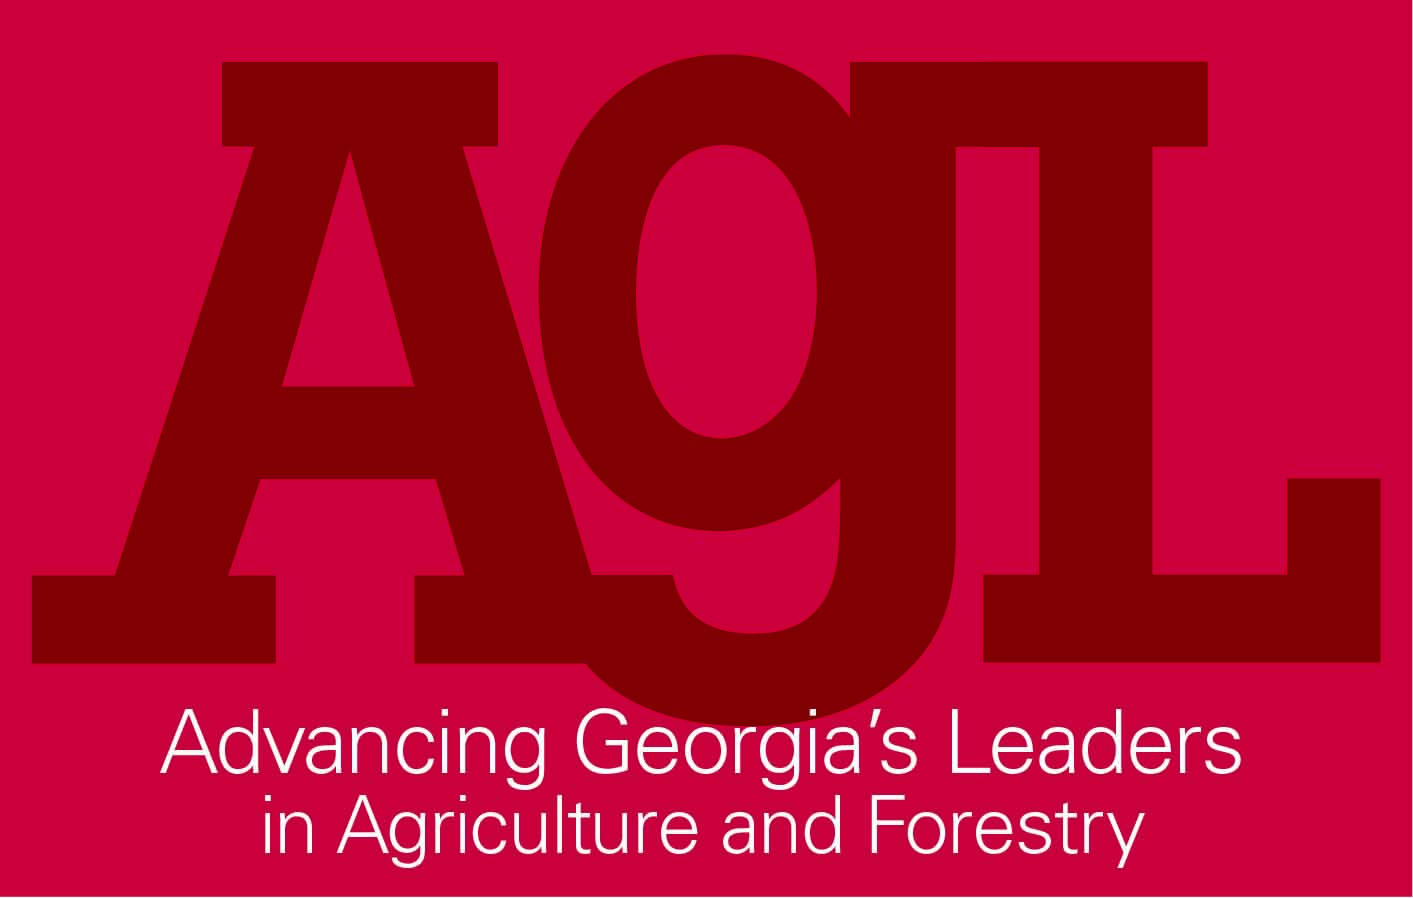 Representing a broad cross section of corporations, businesses and organizations throughout Georgia, 25 professionals have been chosen to participate in the Advancing Georgia's Leaders in Agriculture and Forestry (AGL) 2015-2017 class.